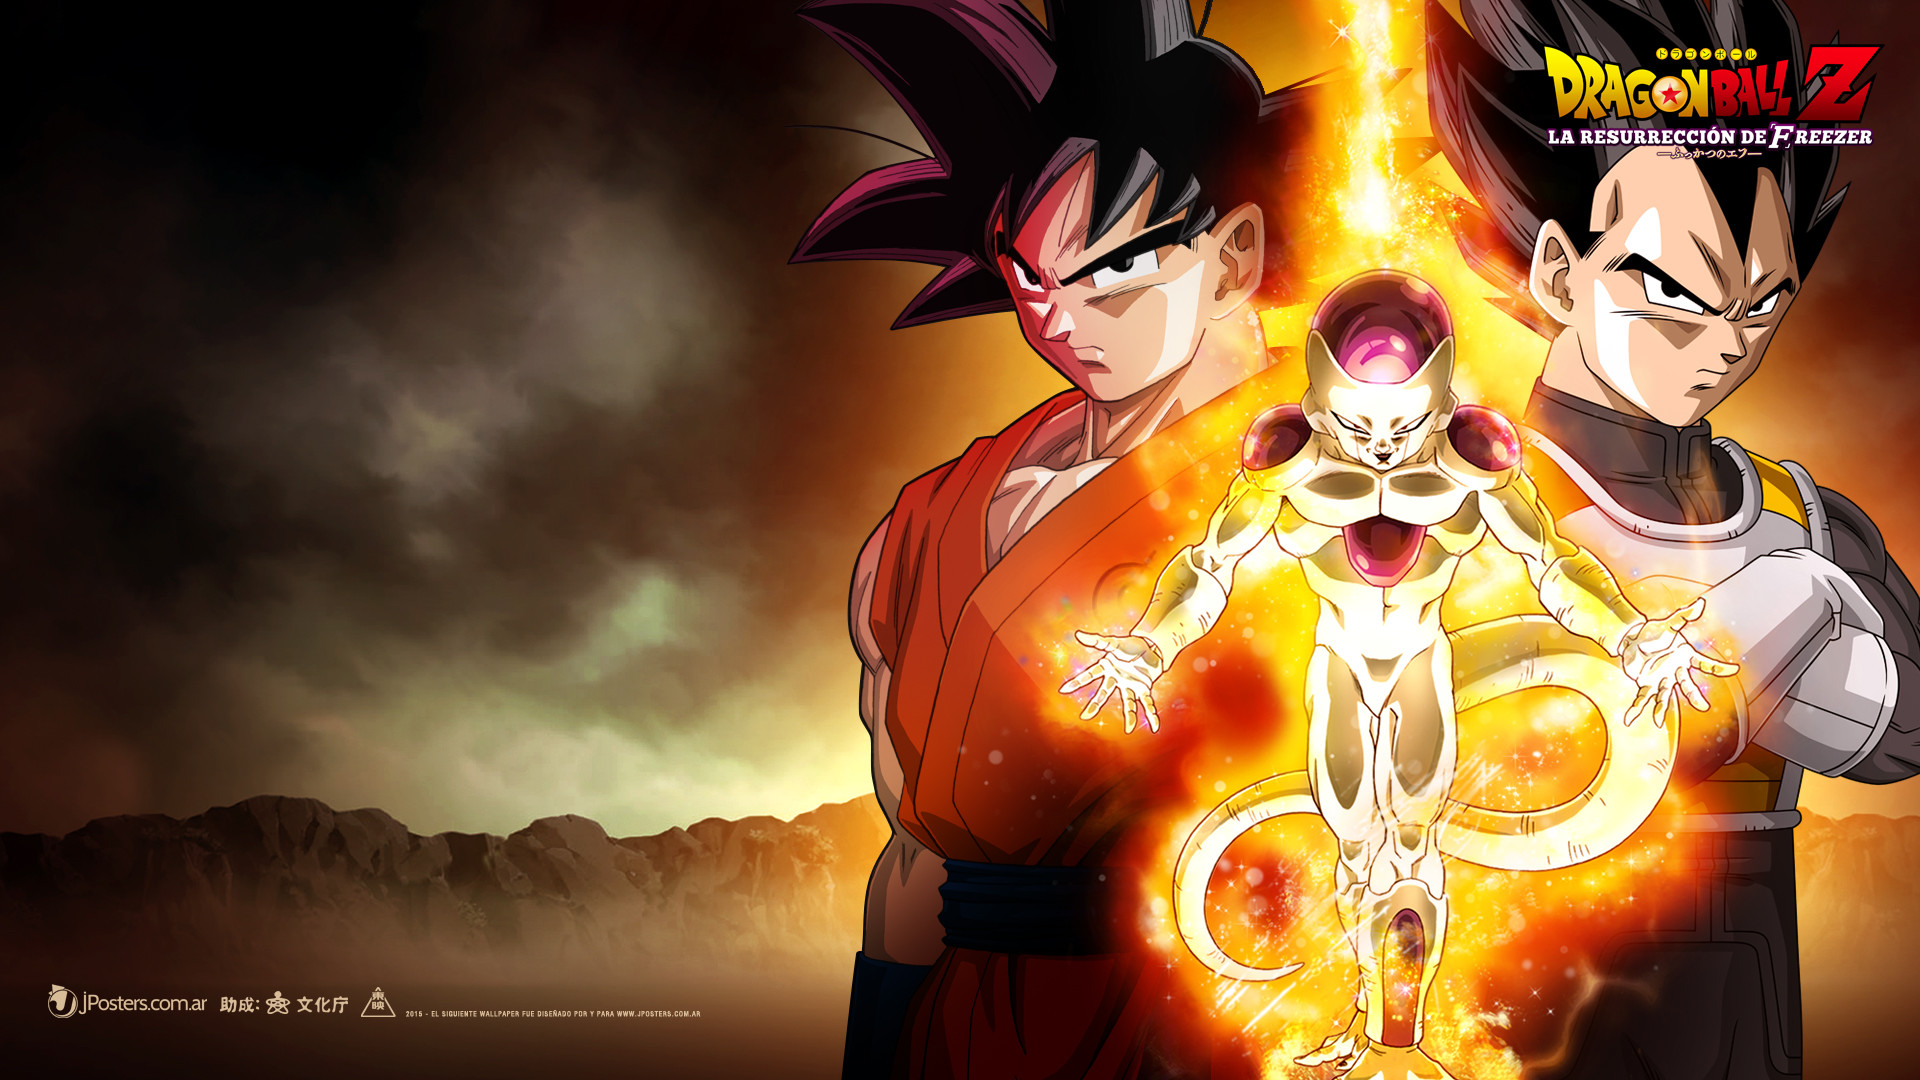 1920x1080 Backgrounds In High Quality: Dragon Ball Z by Ngan Easterwood, April 7, 2015